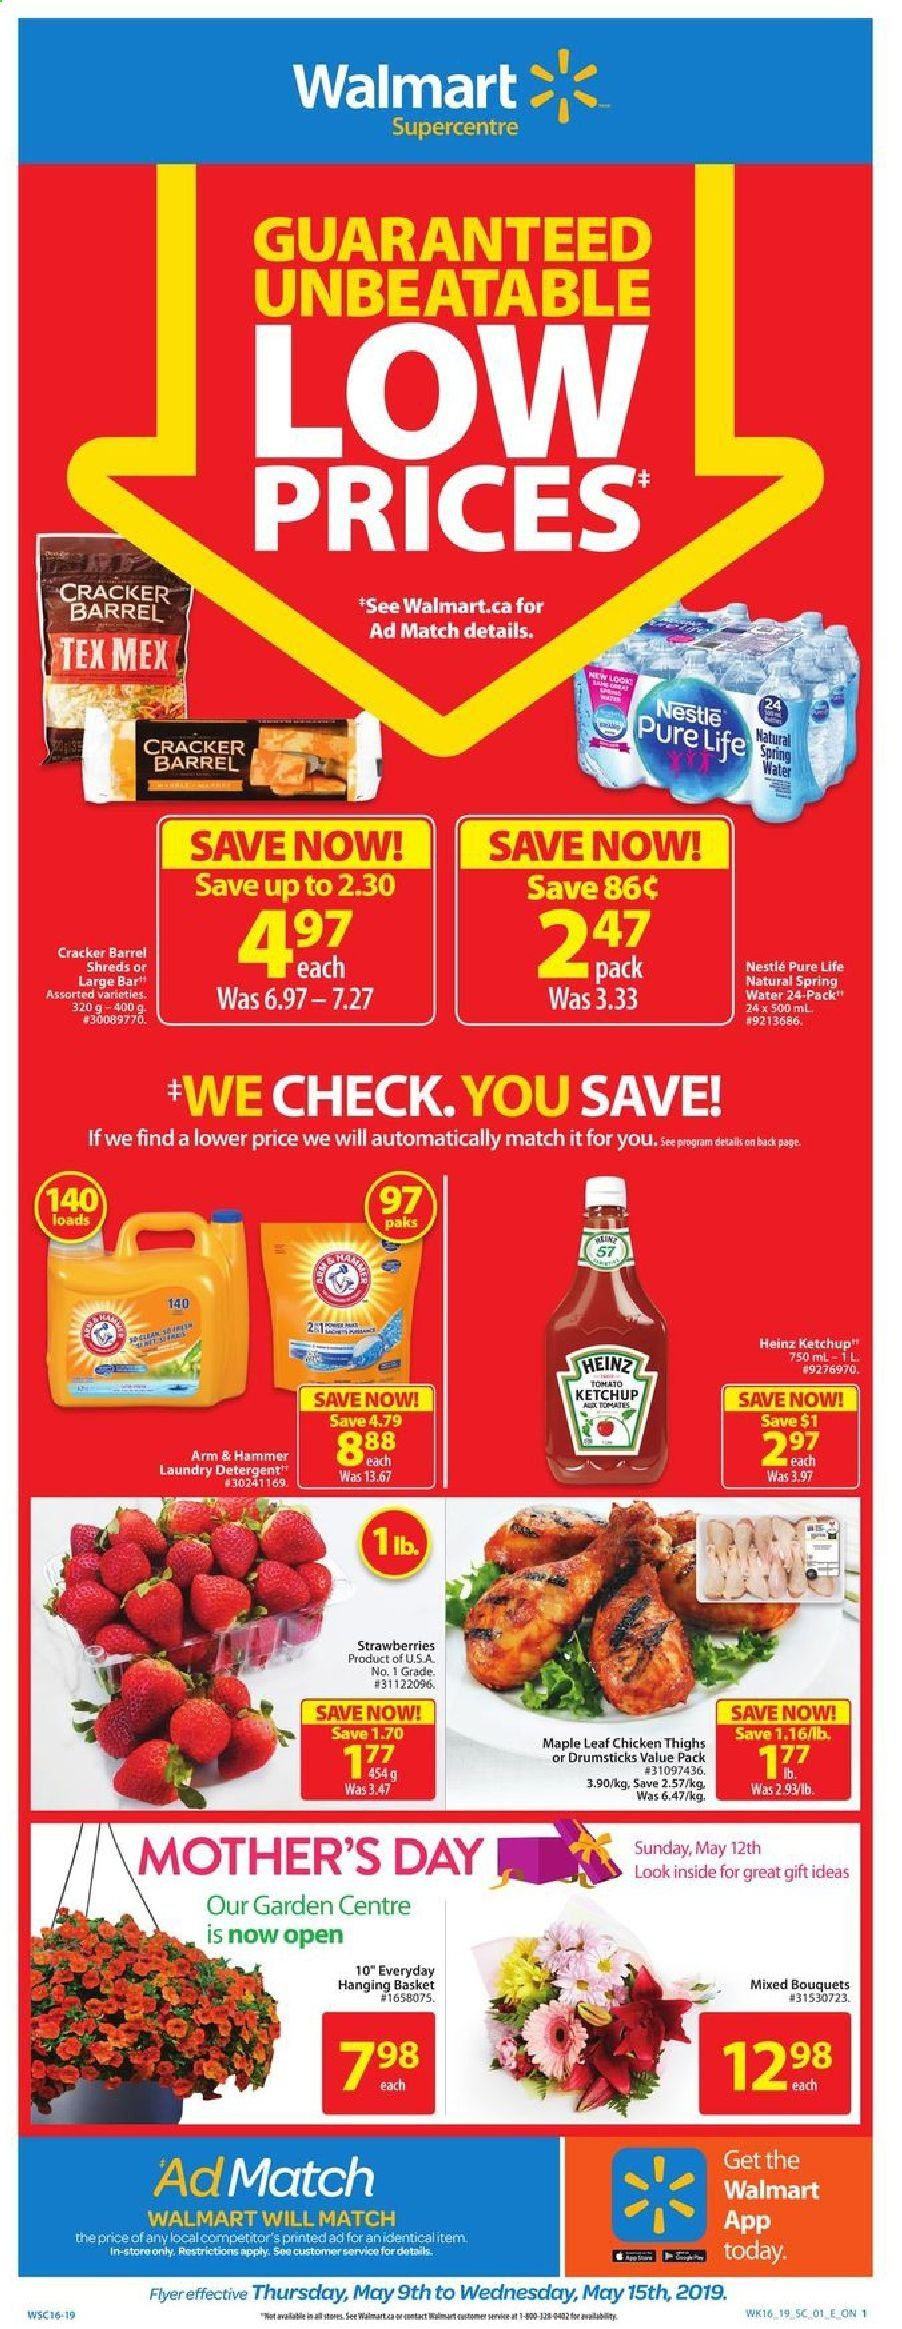 Walmart Flyer - May 09, 2019 - May 15, 2019 - Sales products - arm & hammer, basket, nestlé, spring water, strawberries, heinz, ketchup, chicken, chicken thighs, hammer, cracker. Page 1.